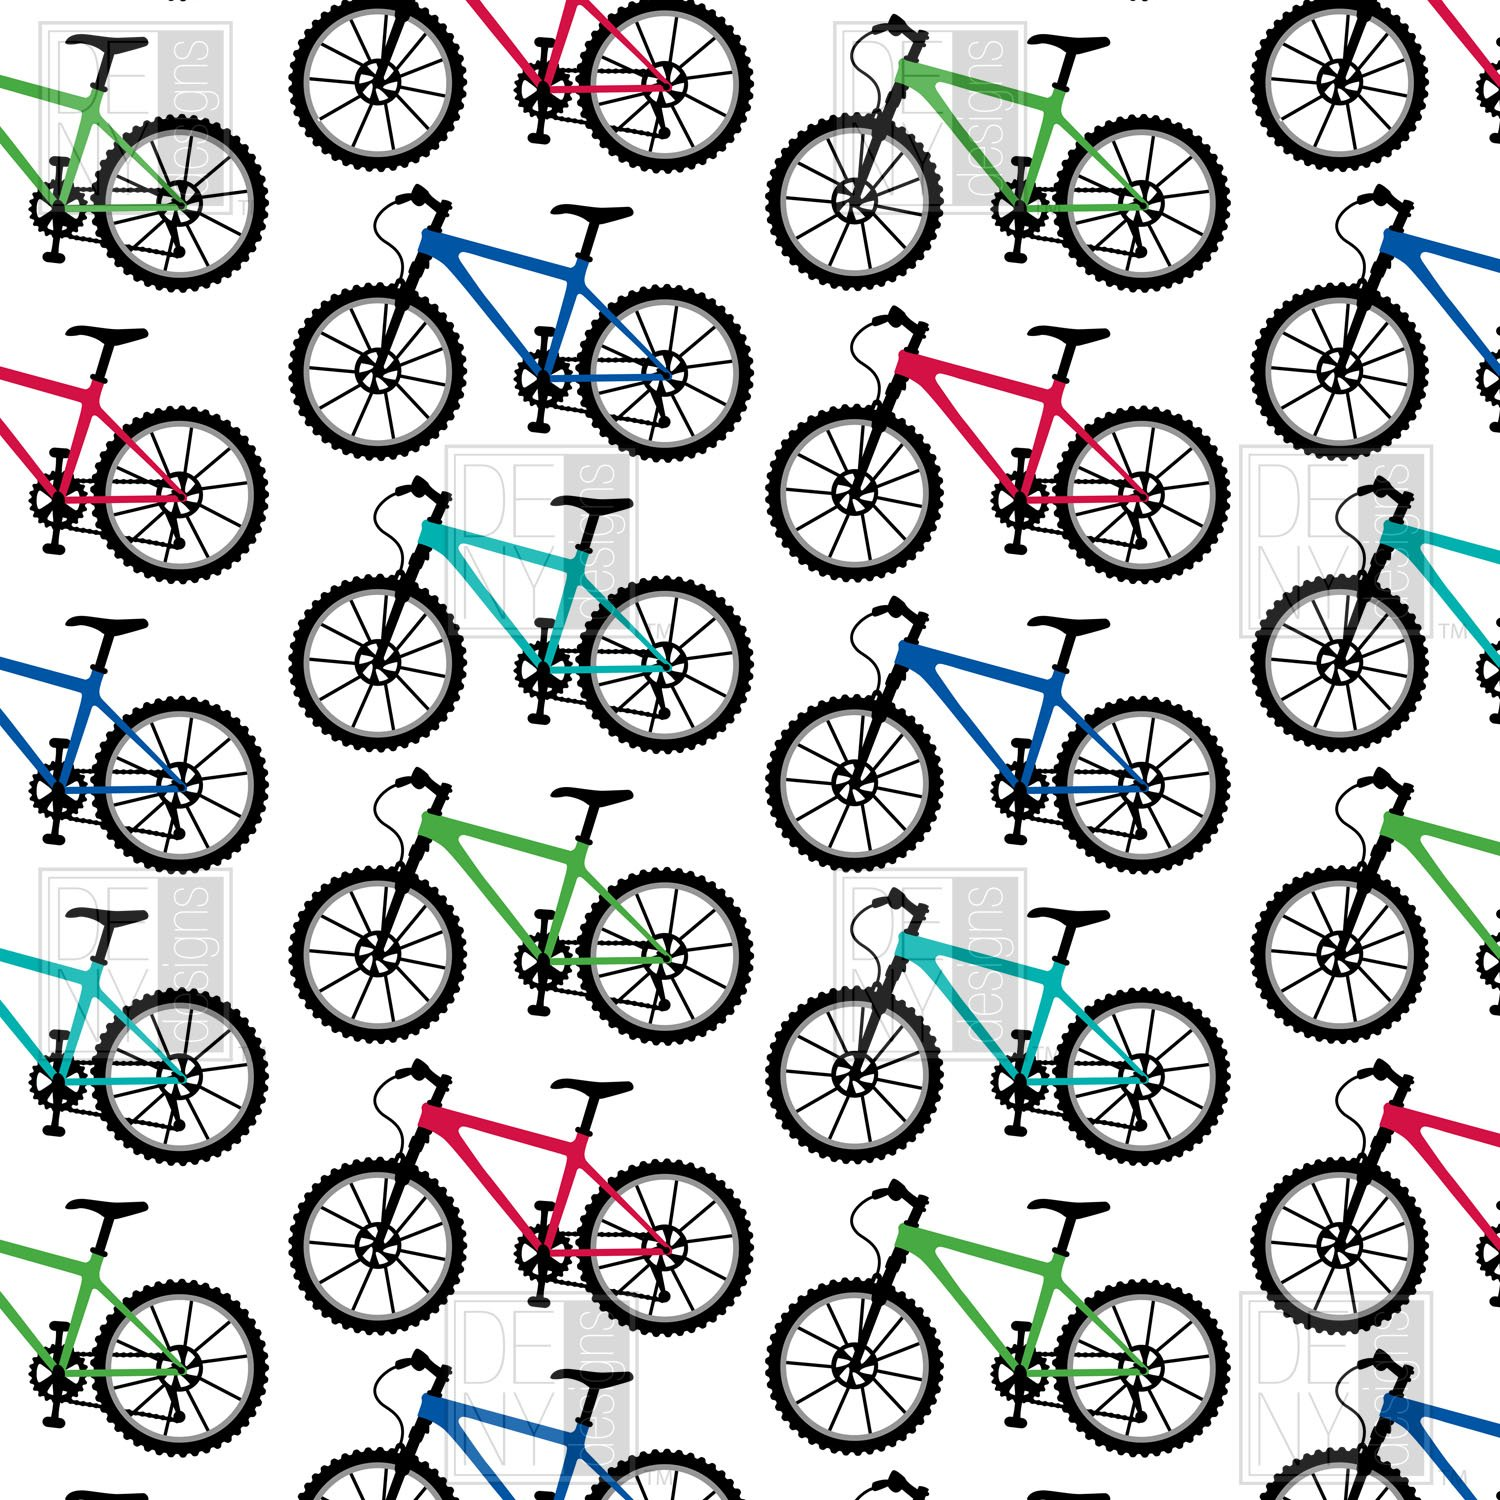 Andi Bird bicycle duvet cover for teen bedroom